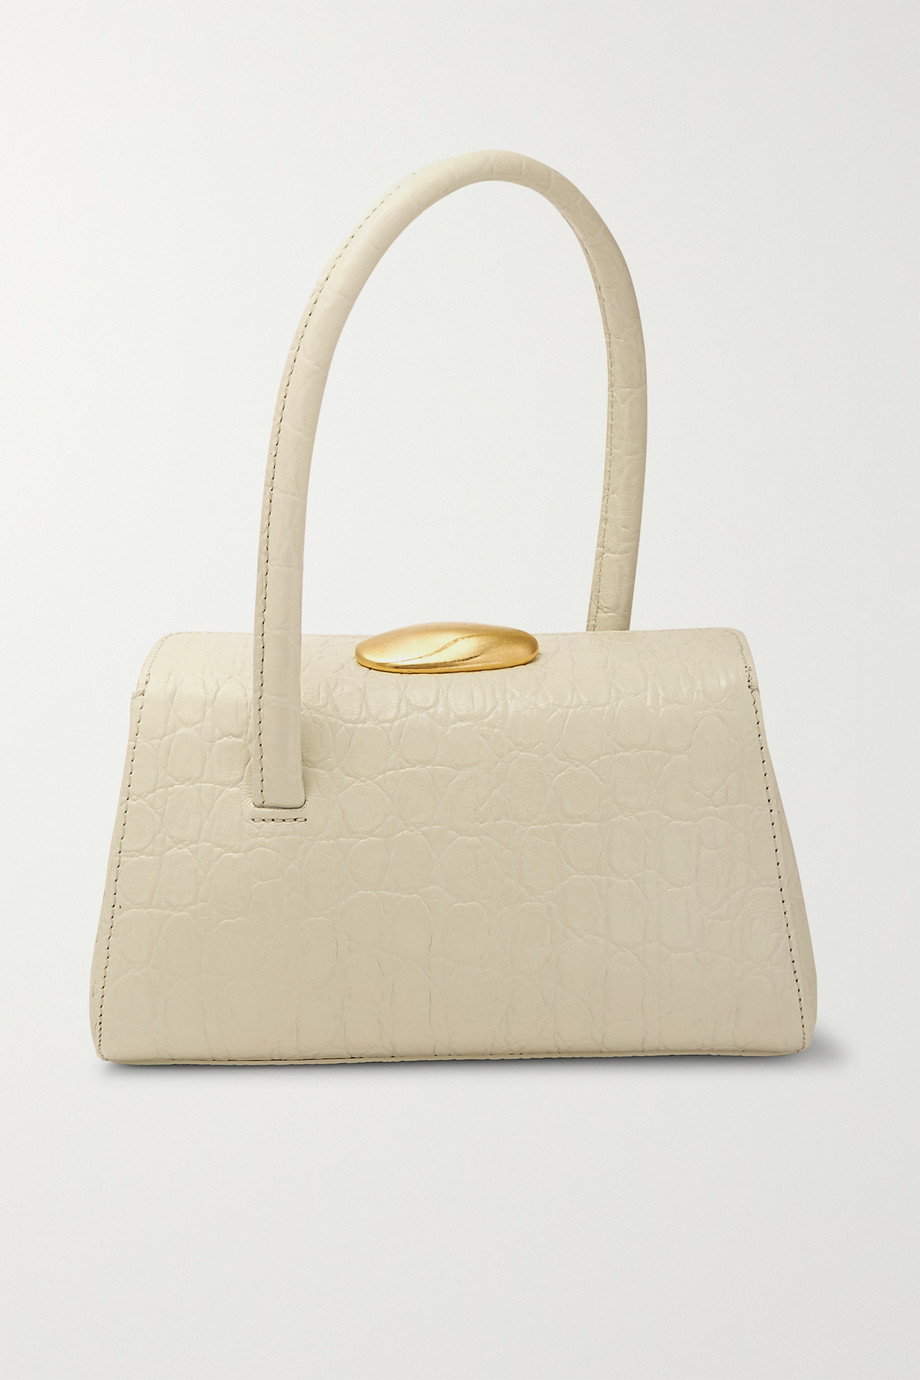 Little Liffner Baby Boss croc-effect leather tote